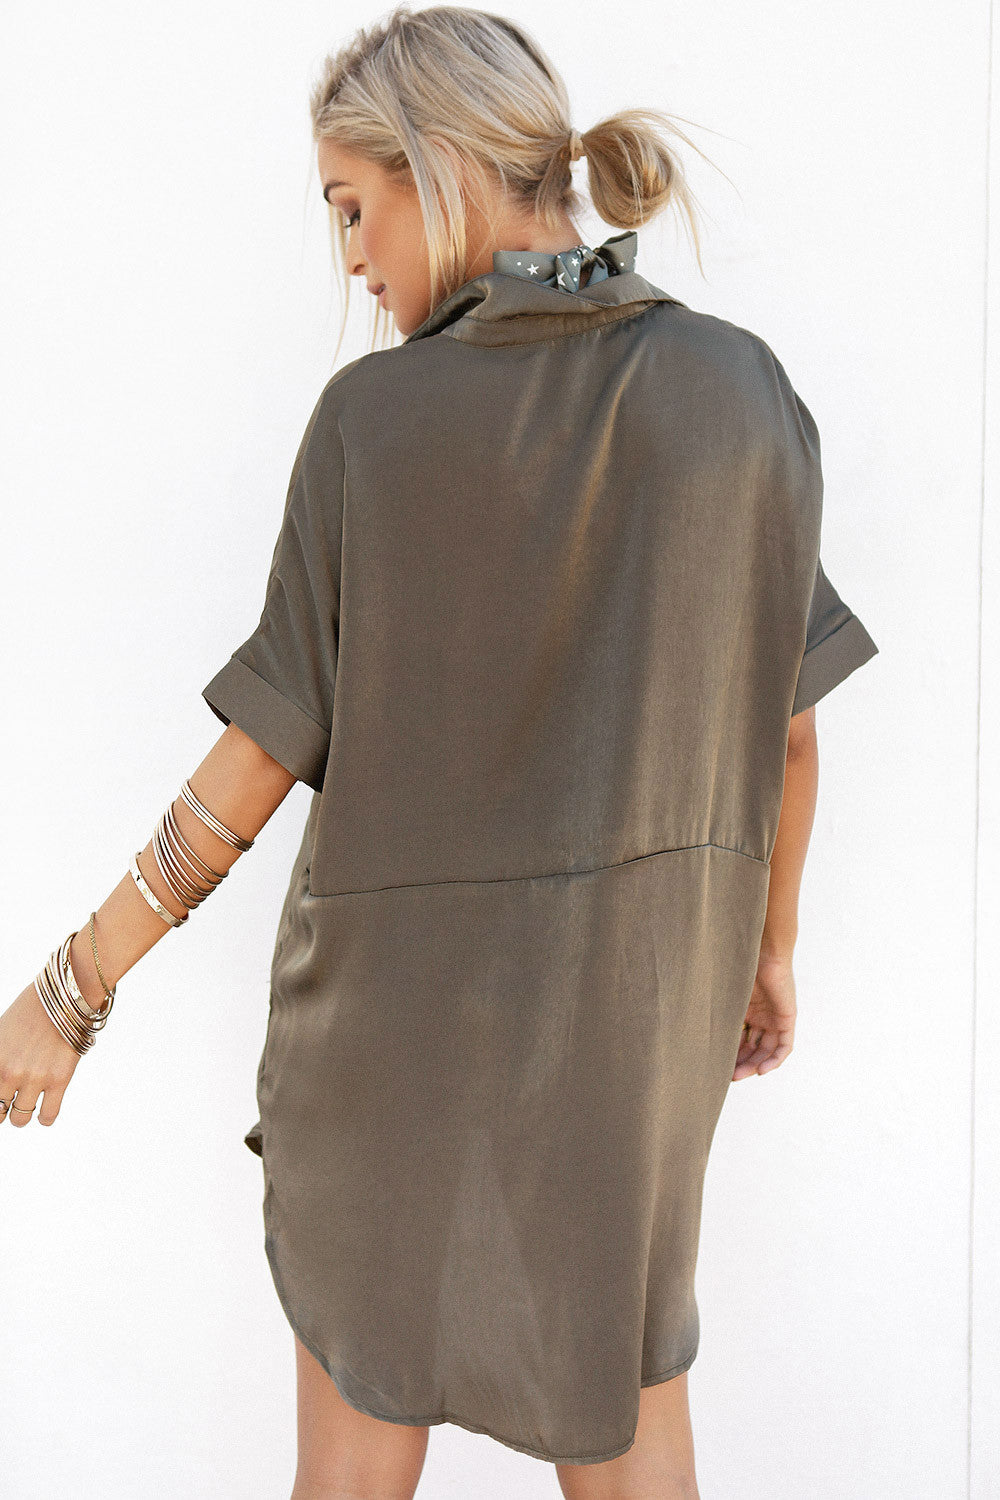 Silky Shirt Dress - Khaki - Lovecy - 5